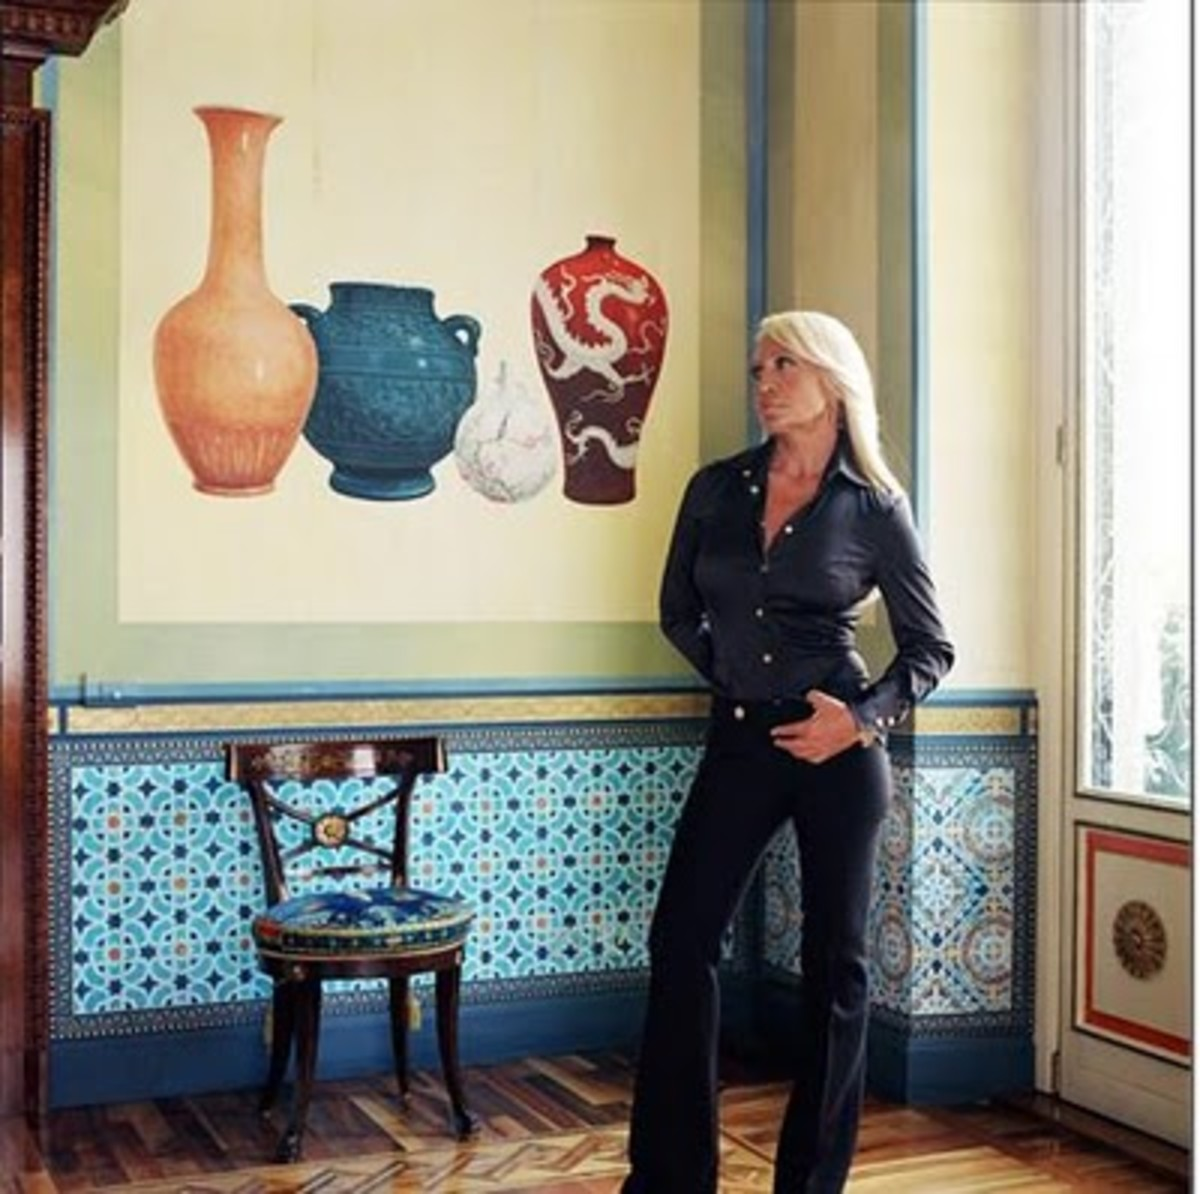 """I'm not a minimalist"" - Donatella Versace, striking a pose in Milan."